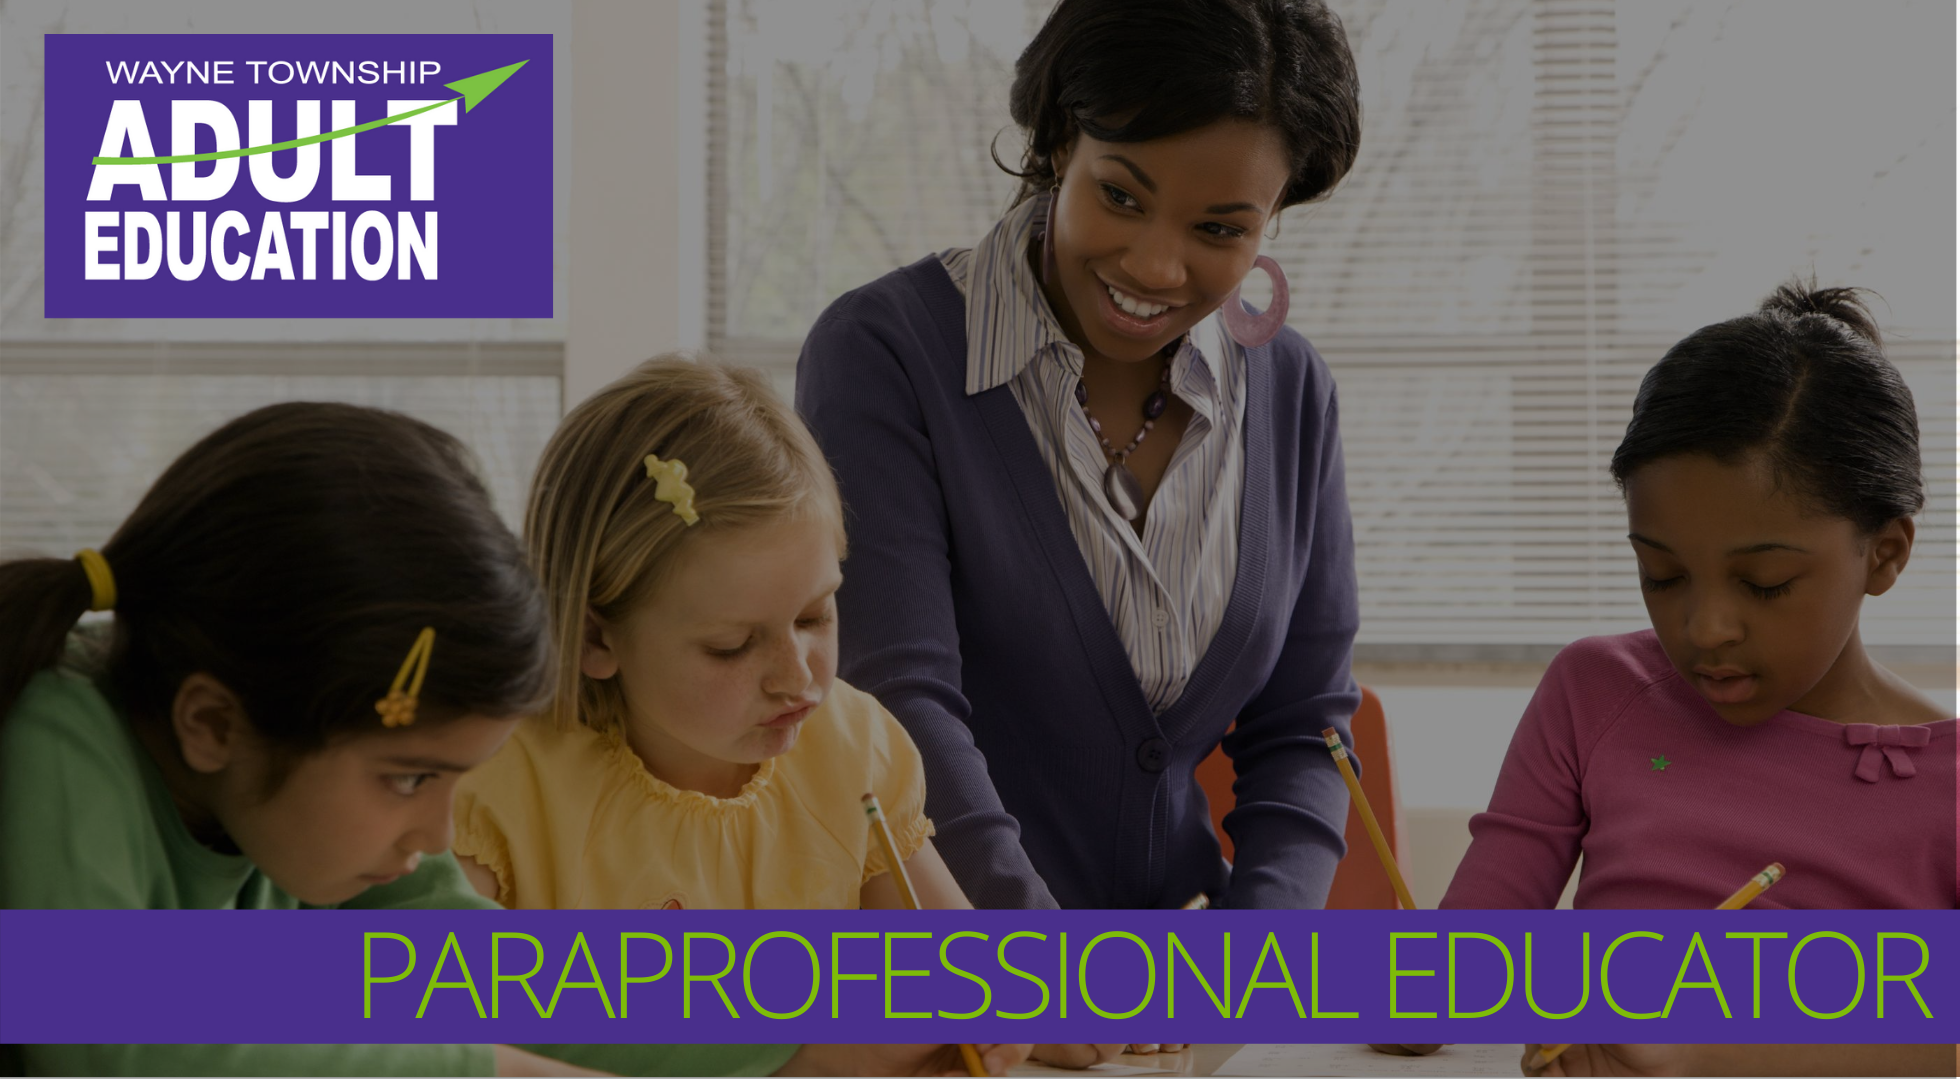 Paraprofessional Educator